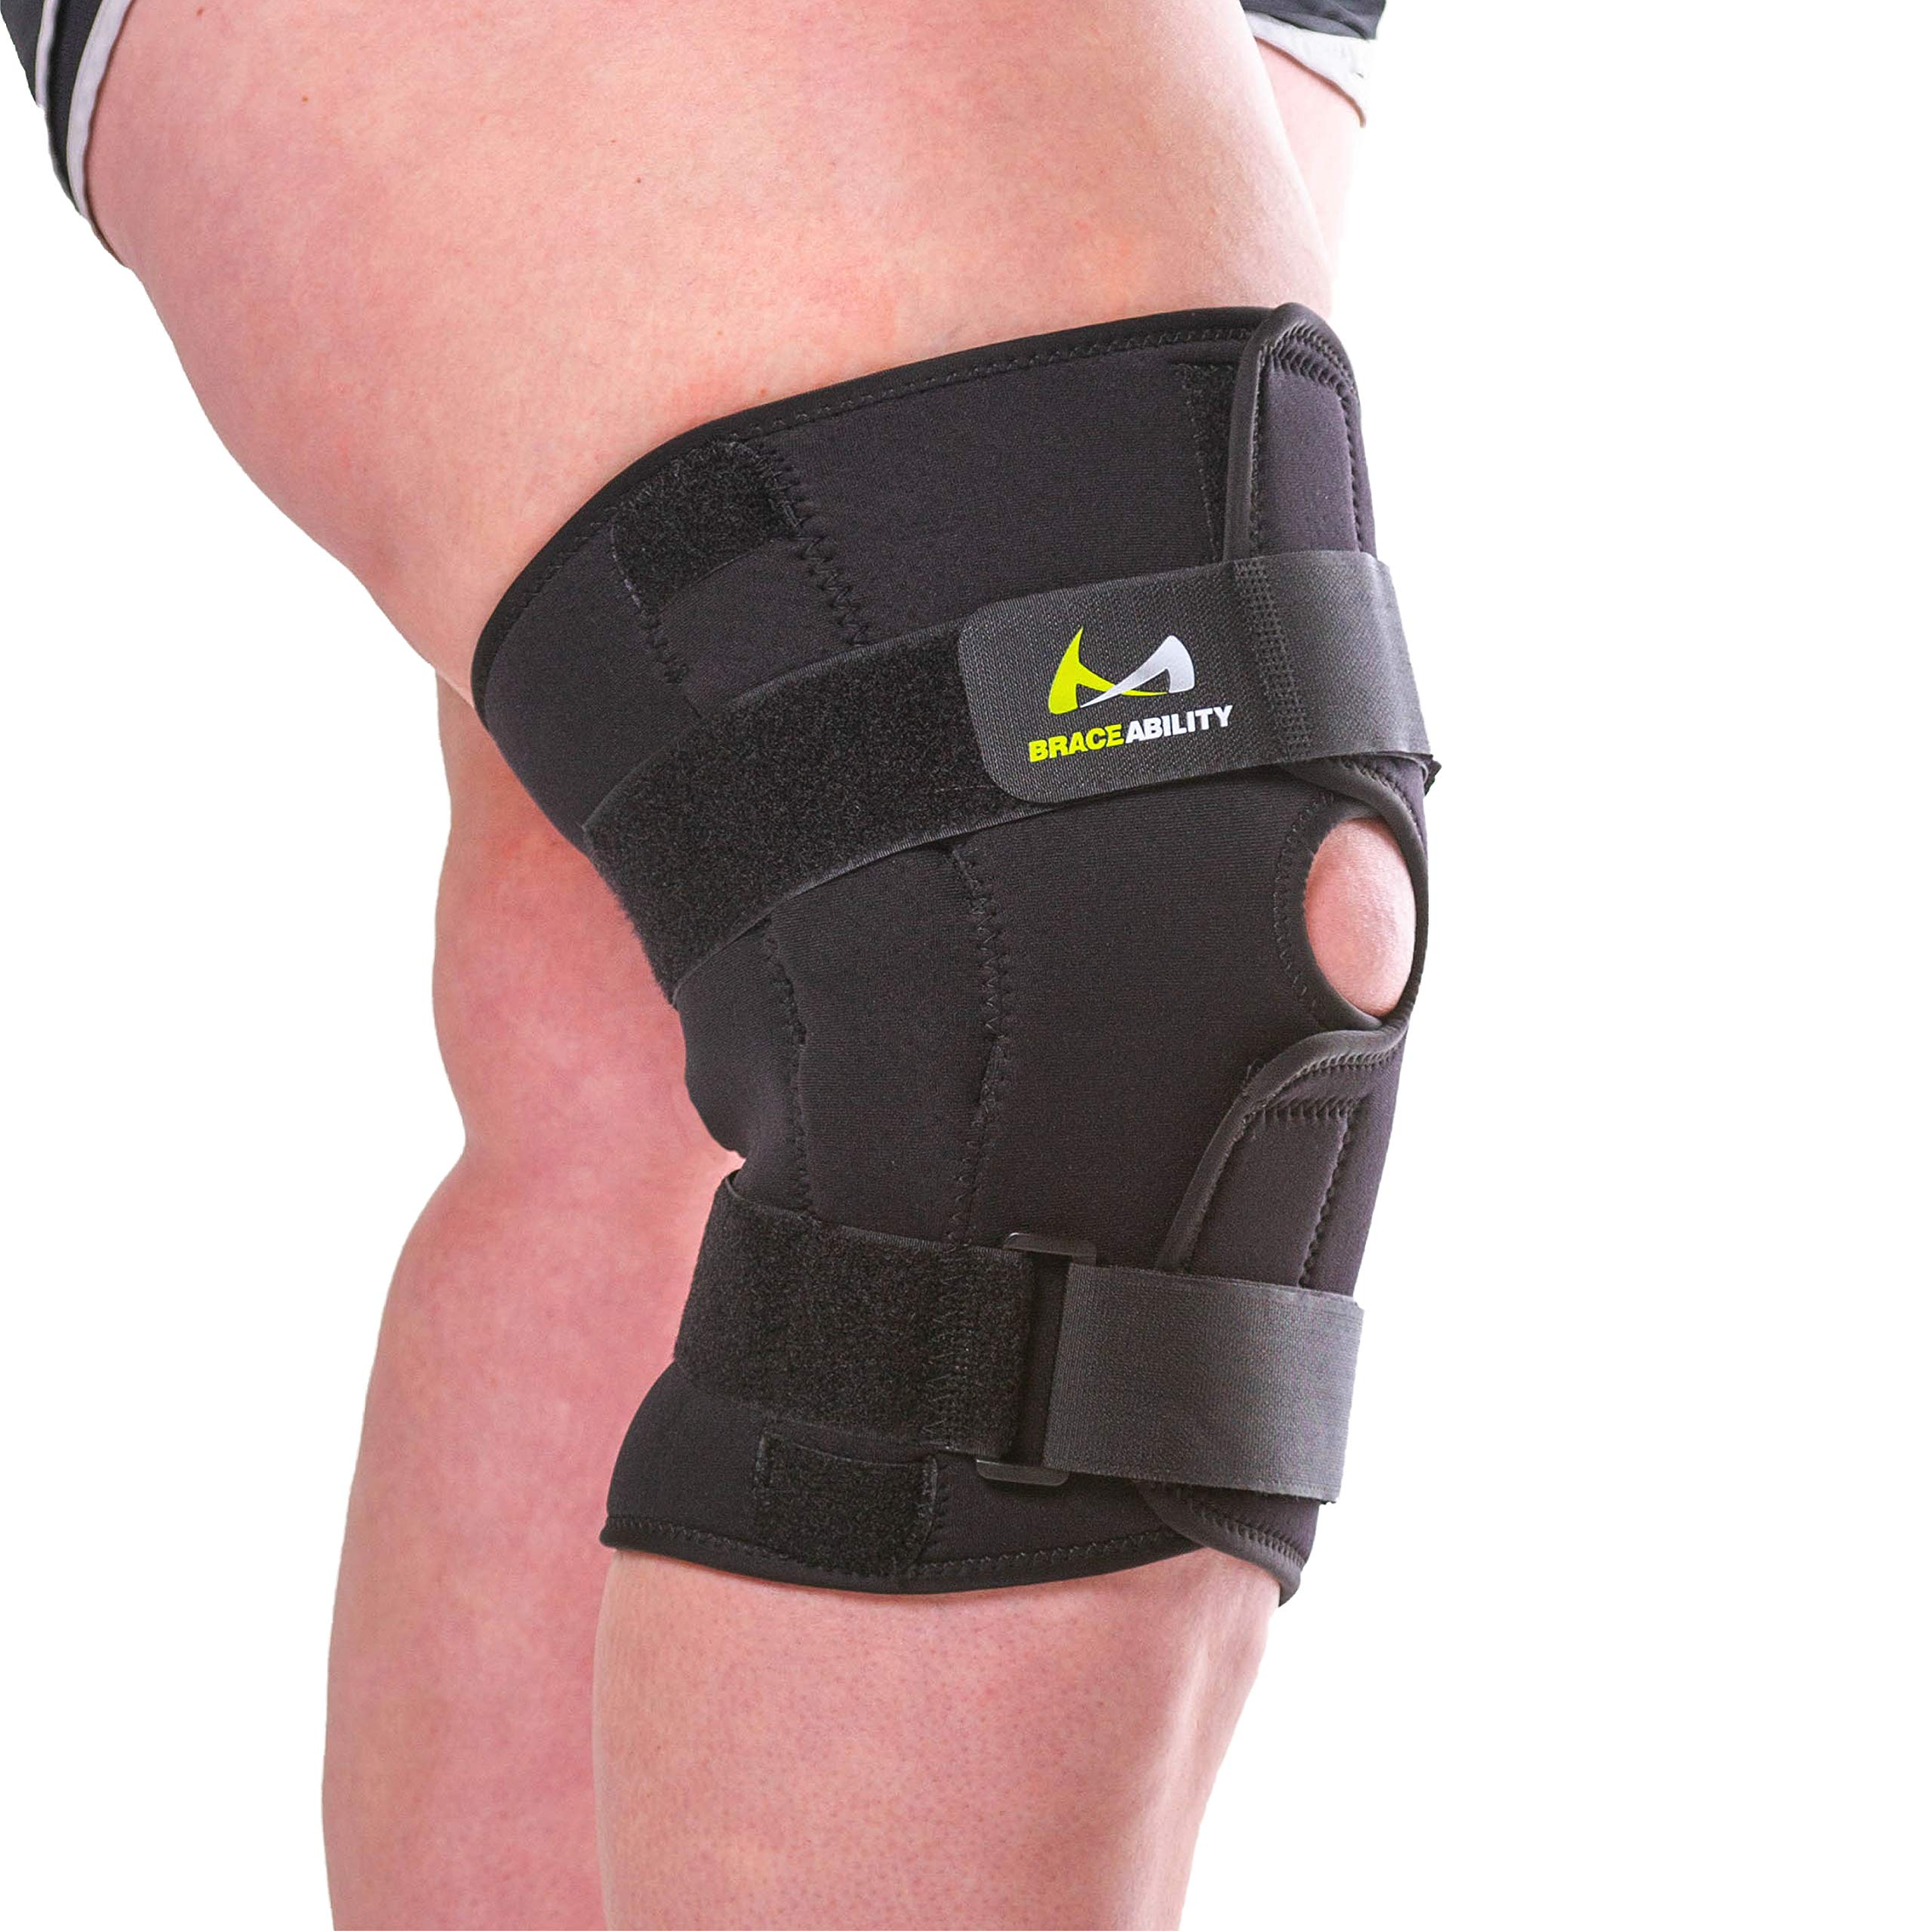 Top 5 Best knee support plus size for arthritis to